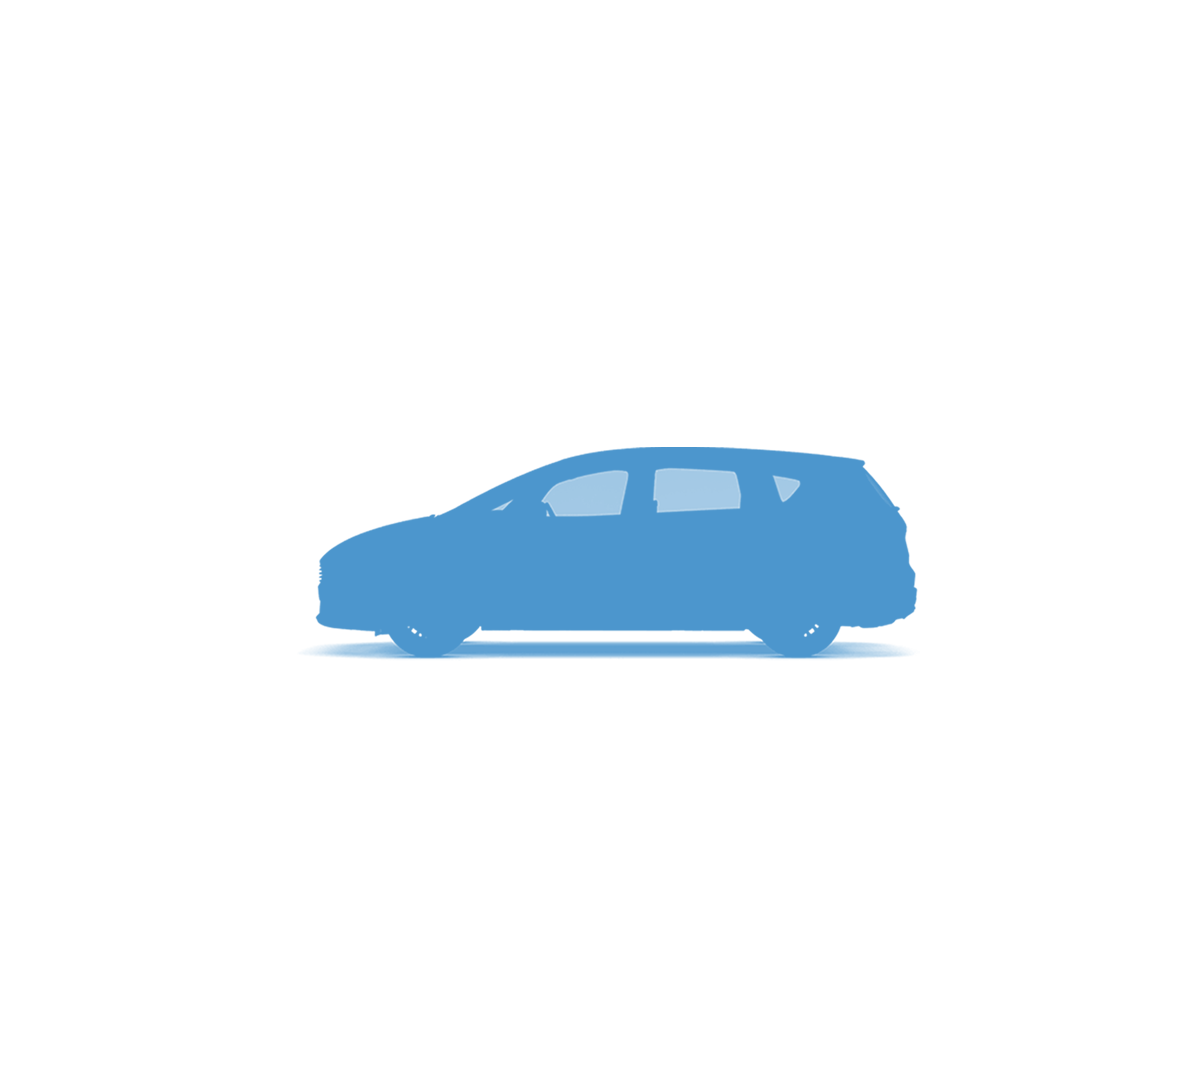 ford-motorcraft-eu-S_MAX-9x8-1200x1067-icon.png.renditions.extra-large.png